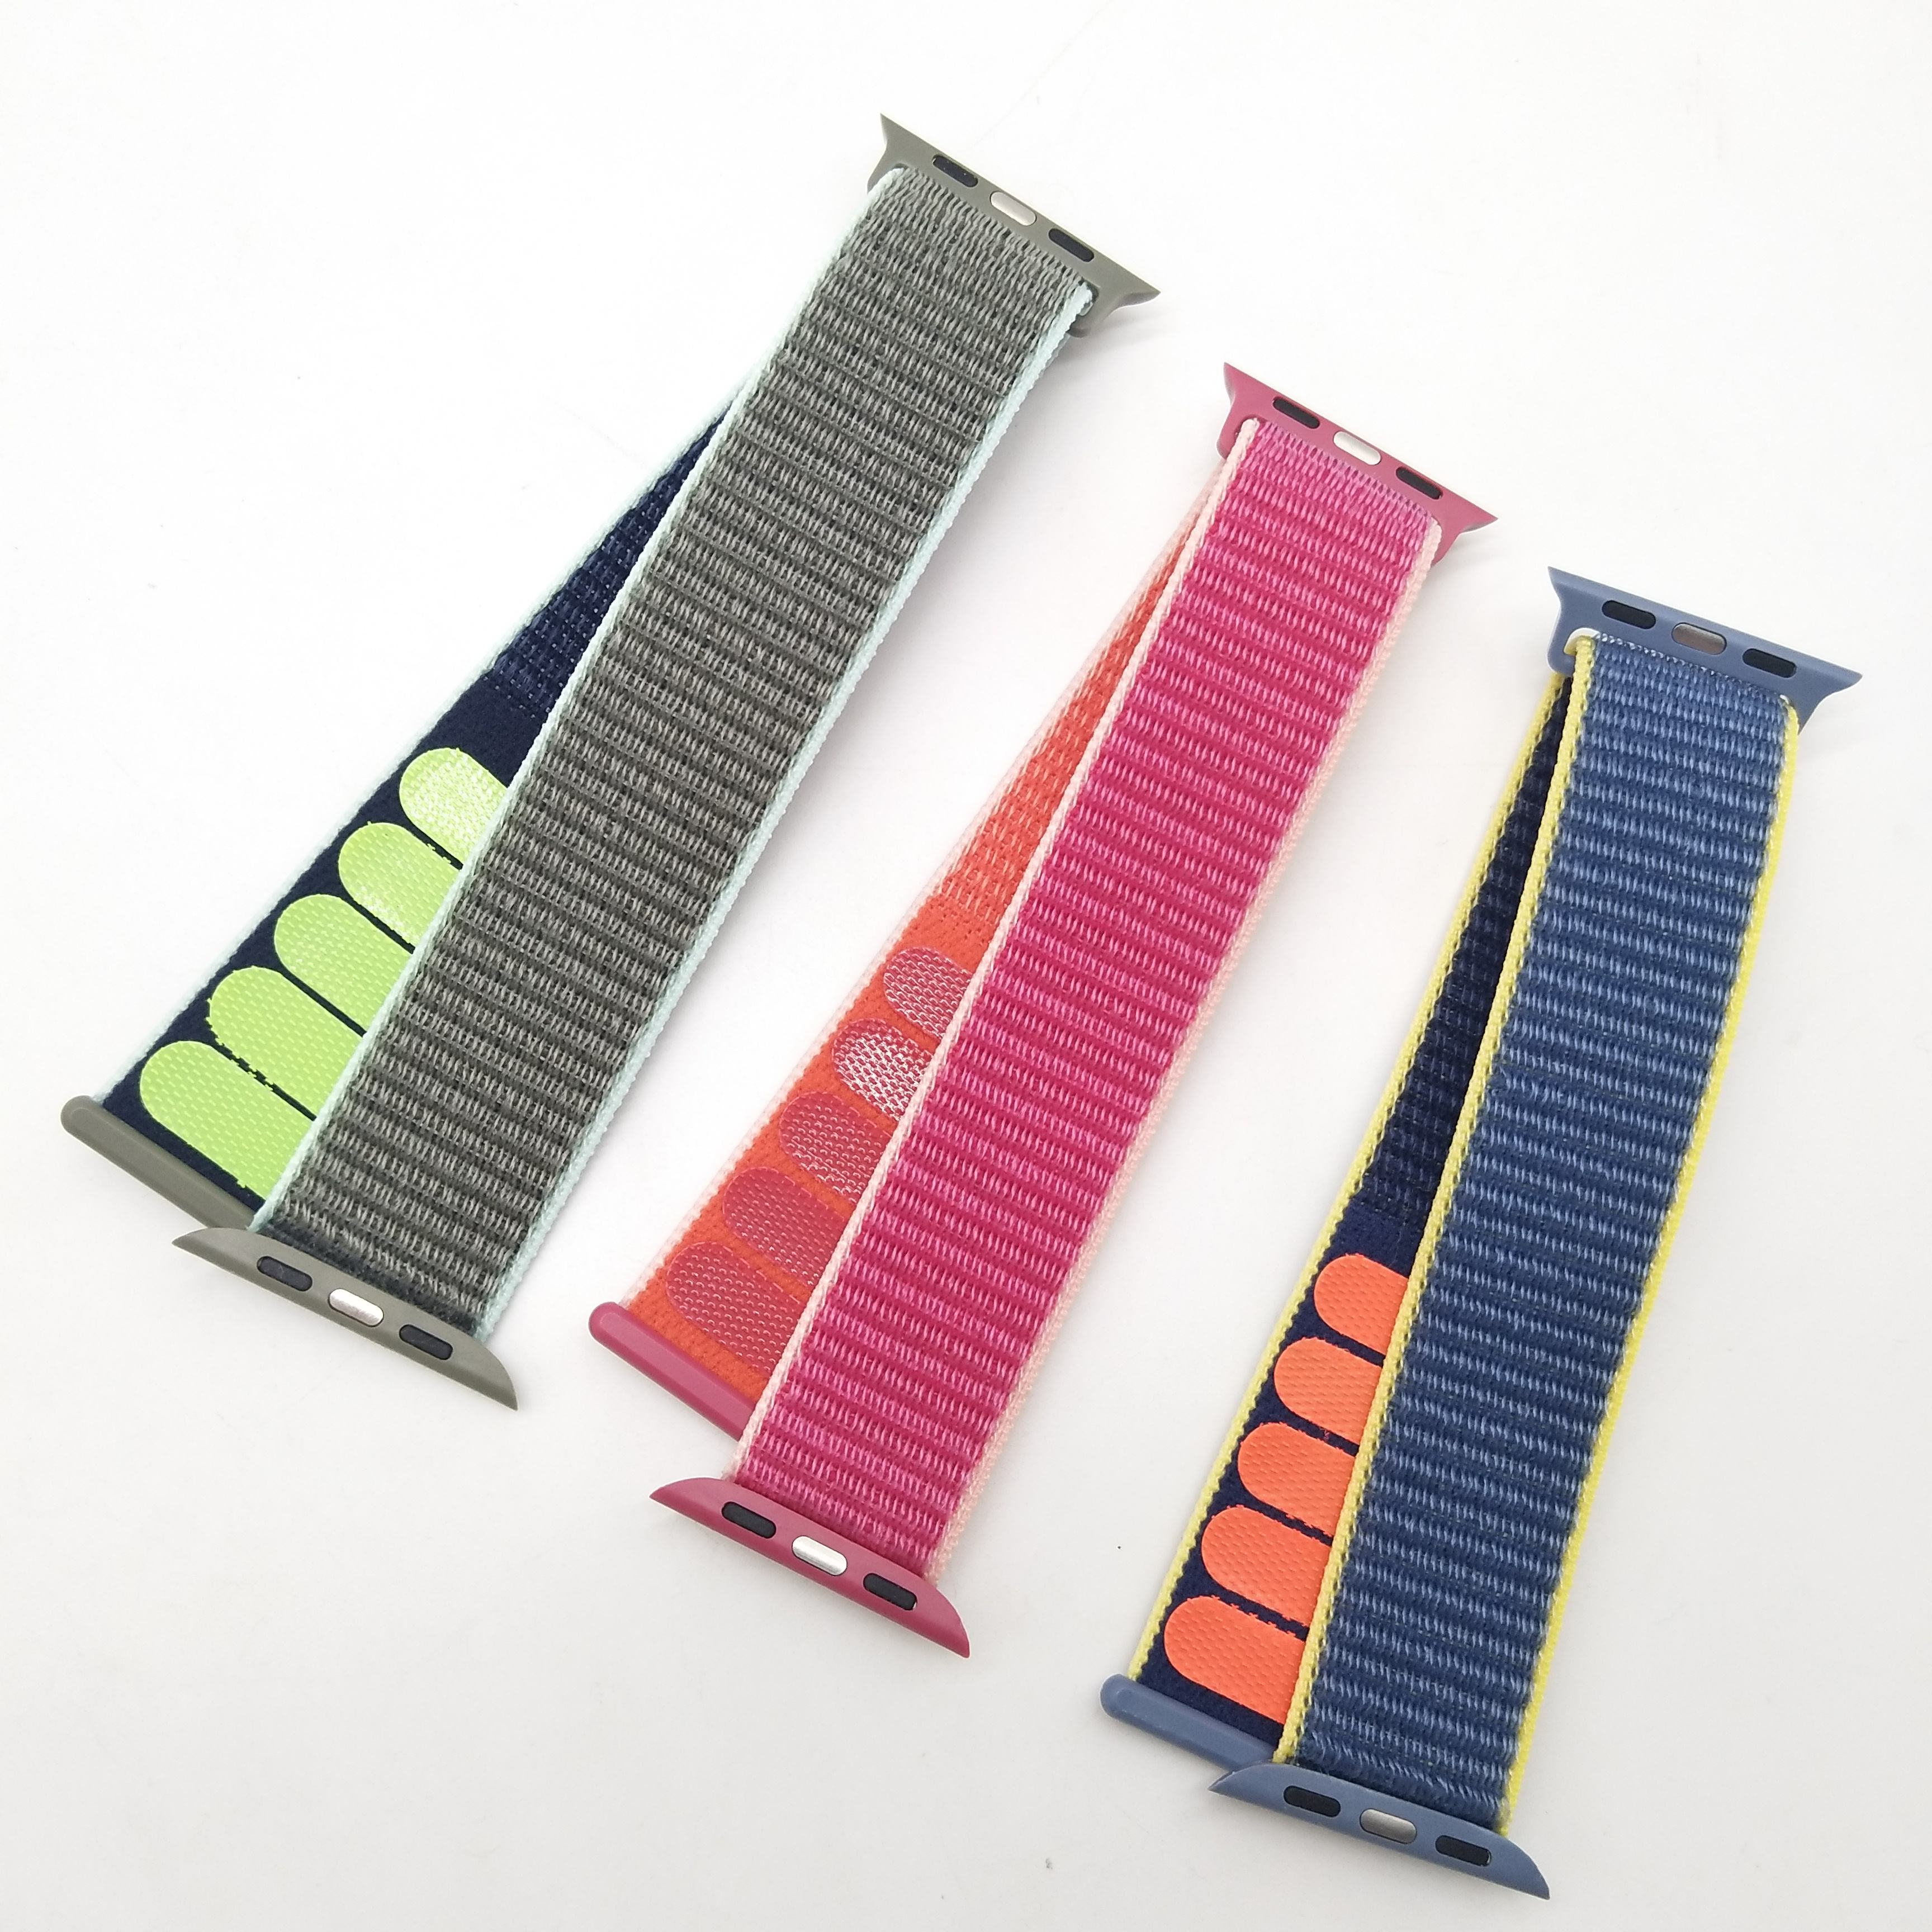 Ribbon [ Band Watch ] Cheap Price Reflective Nylon Sport Loop Band For Apple Watch Band Strap